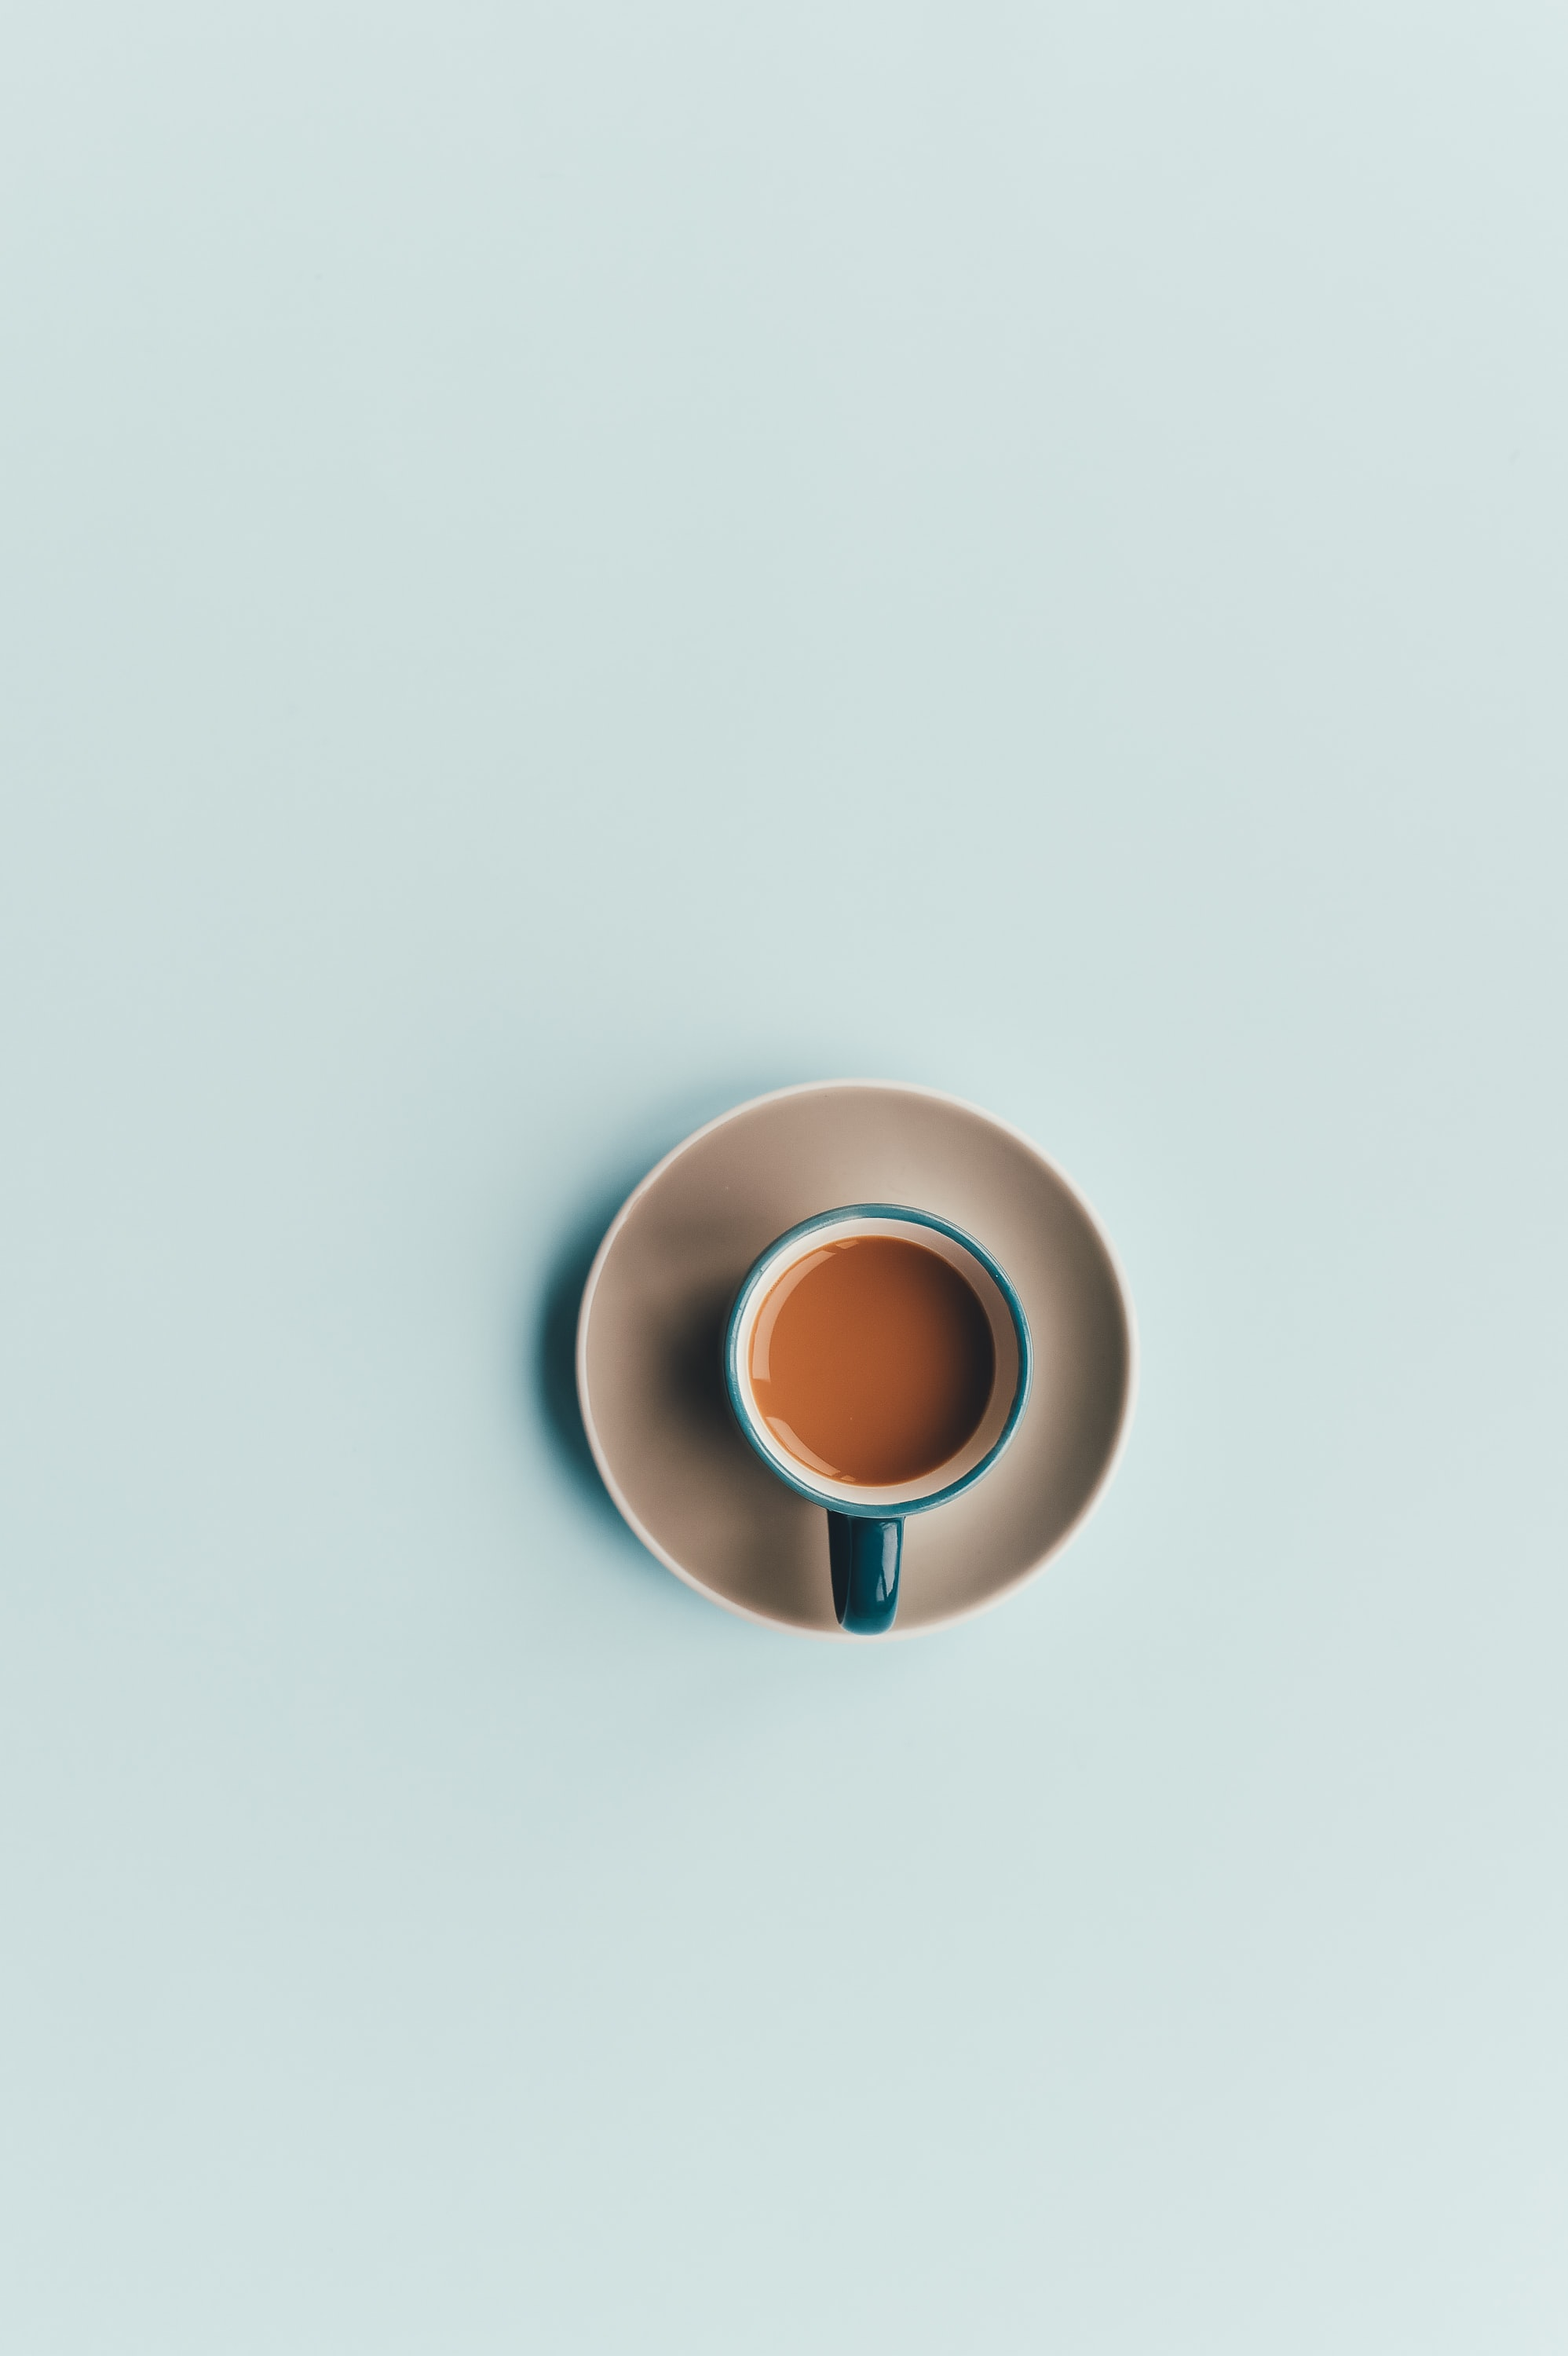 An overhead shot of coffee in a blue cup on a white saucer